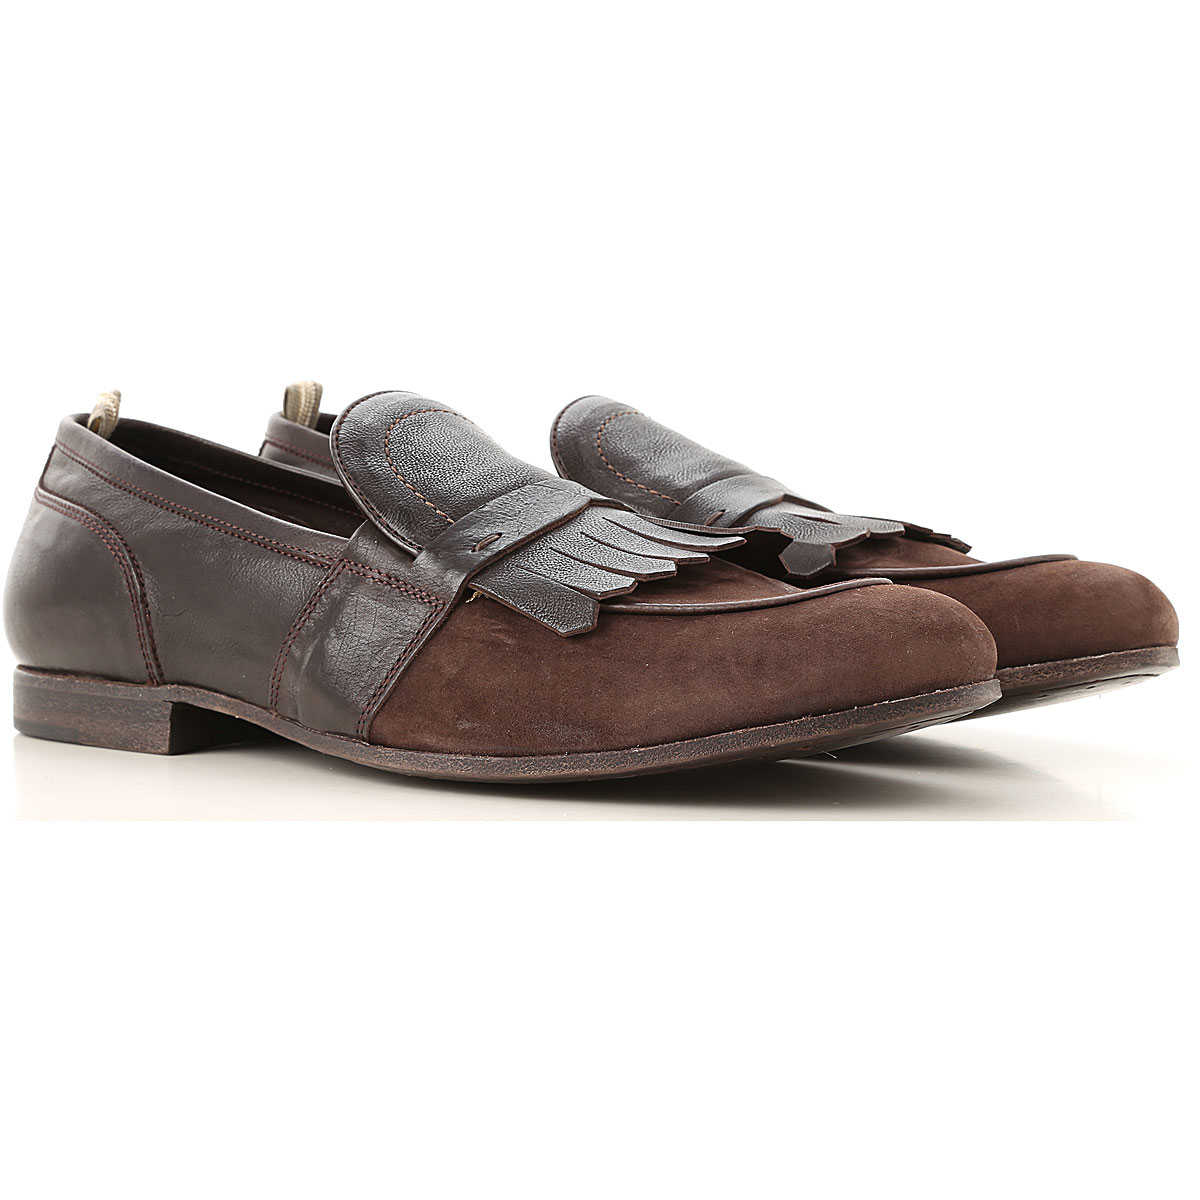 Officine Creative Loafers for Men Chocolate USA - GOOFASH